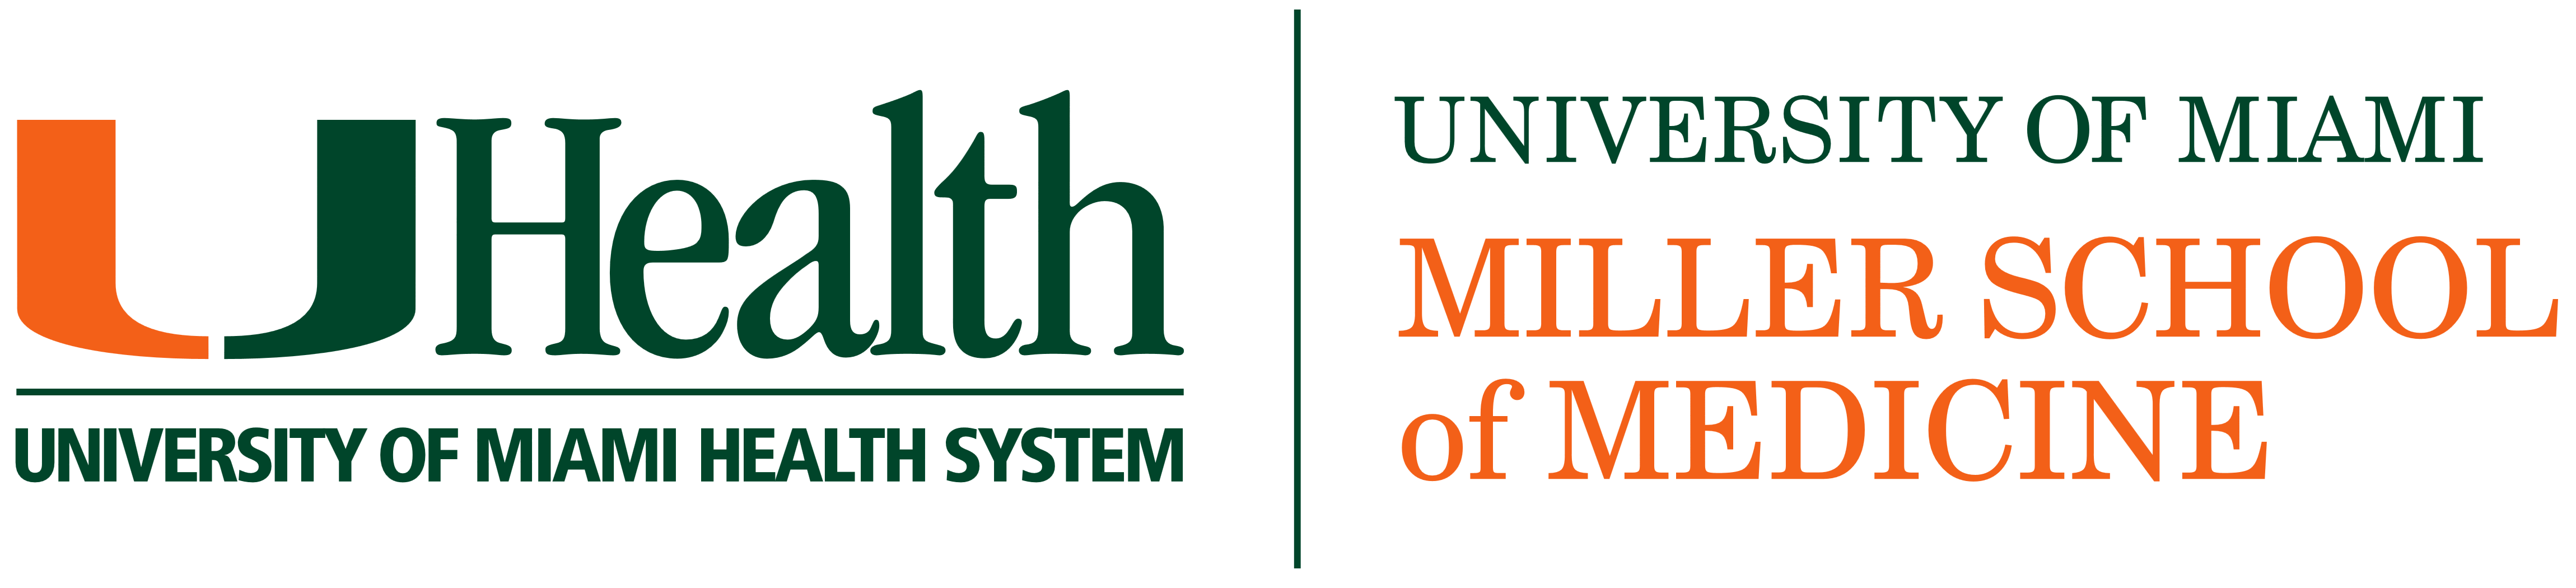 University of Miami Health System, Miller School of Medicine